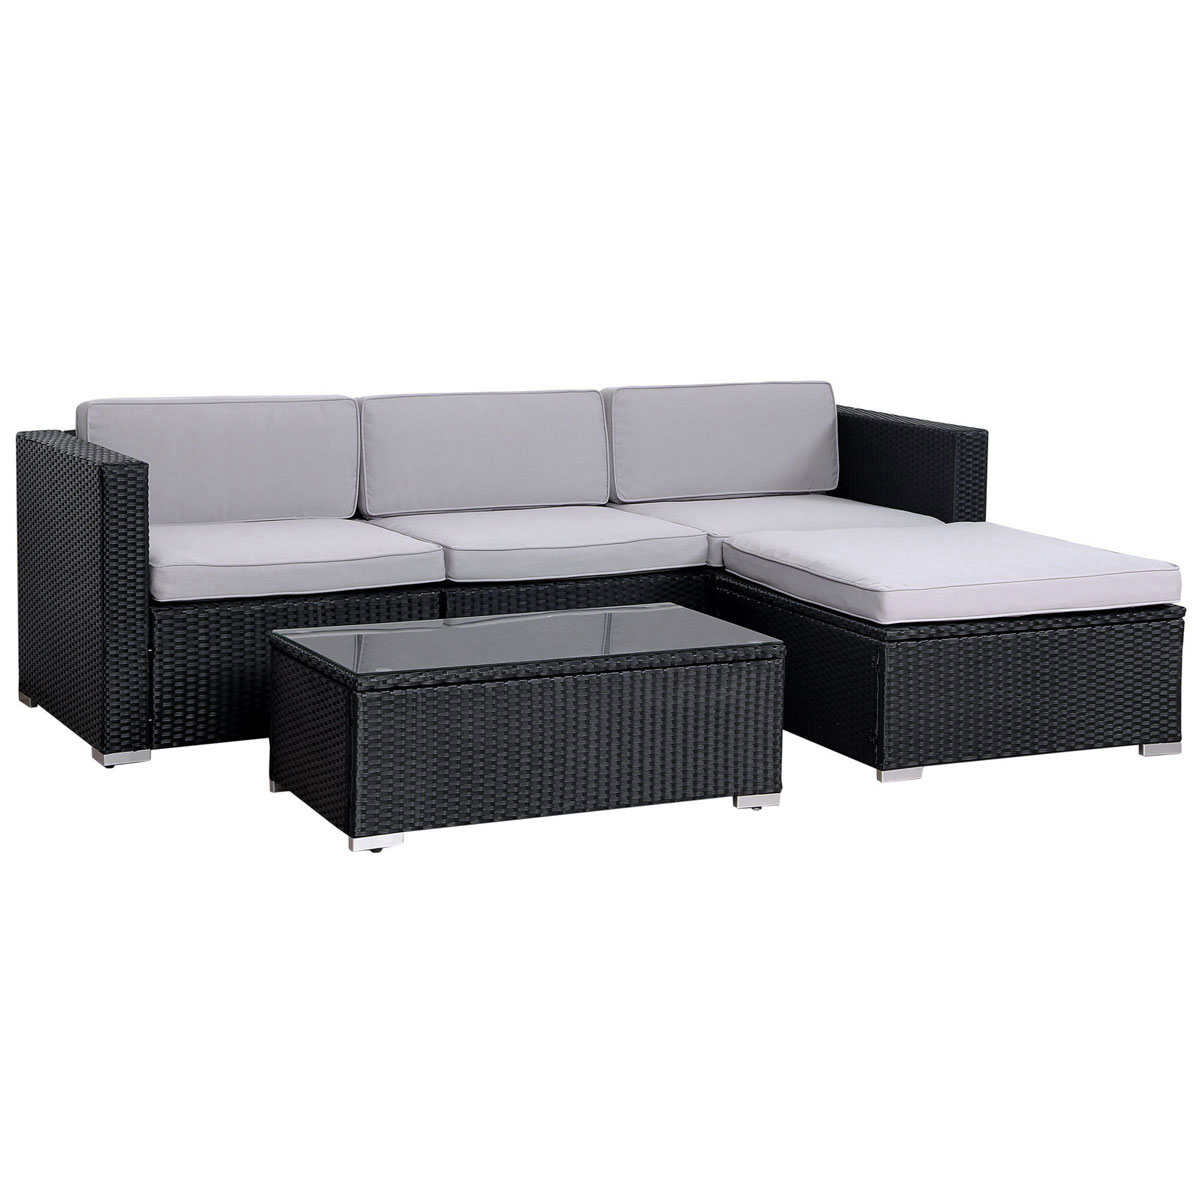 90962  SVITA CALIFORNIA Poly Rattan Lounge XL schwarz